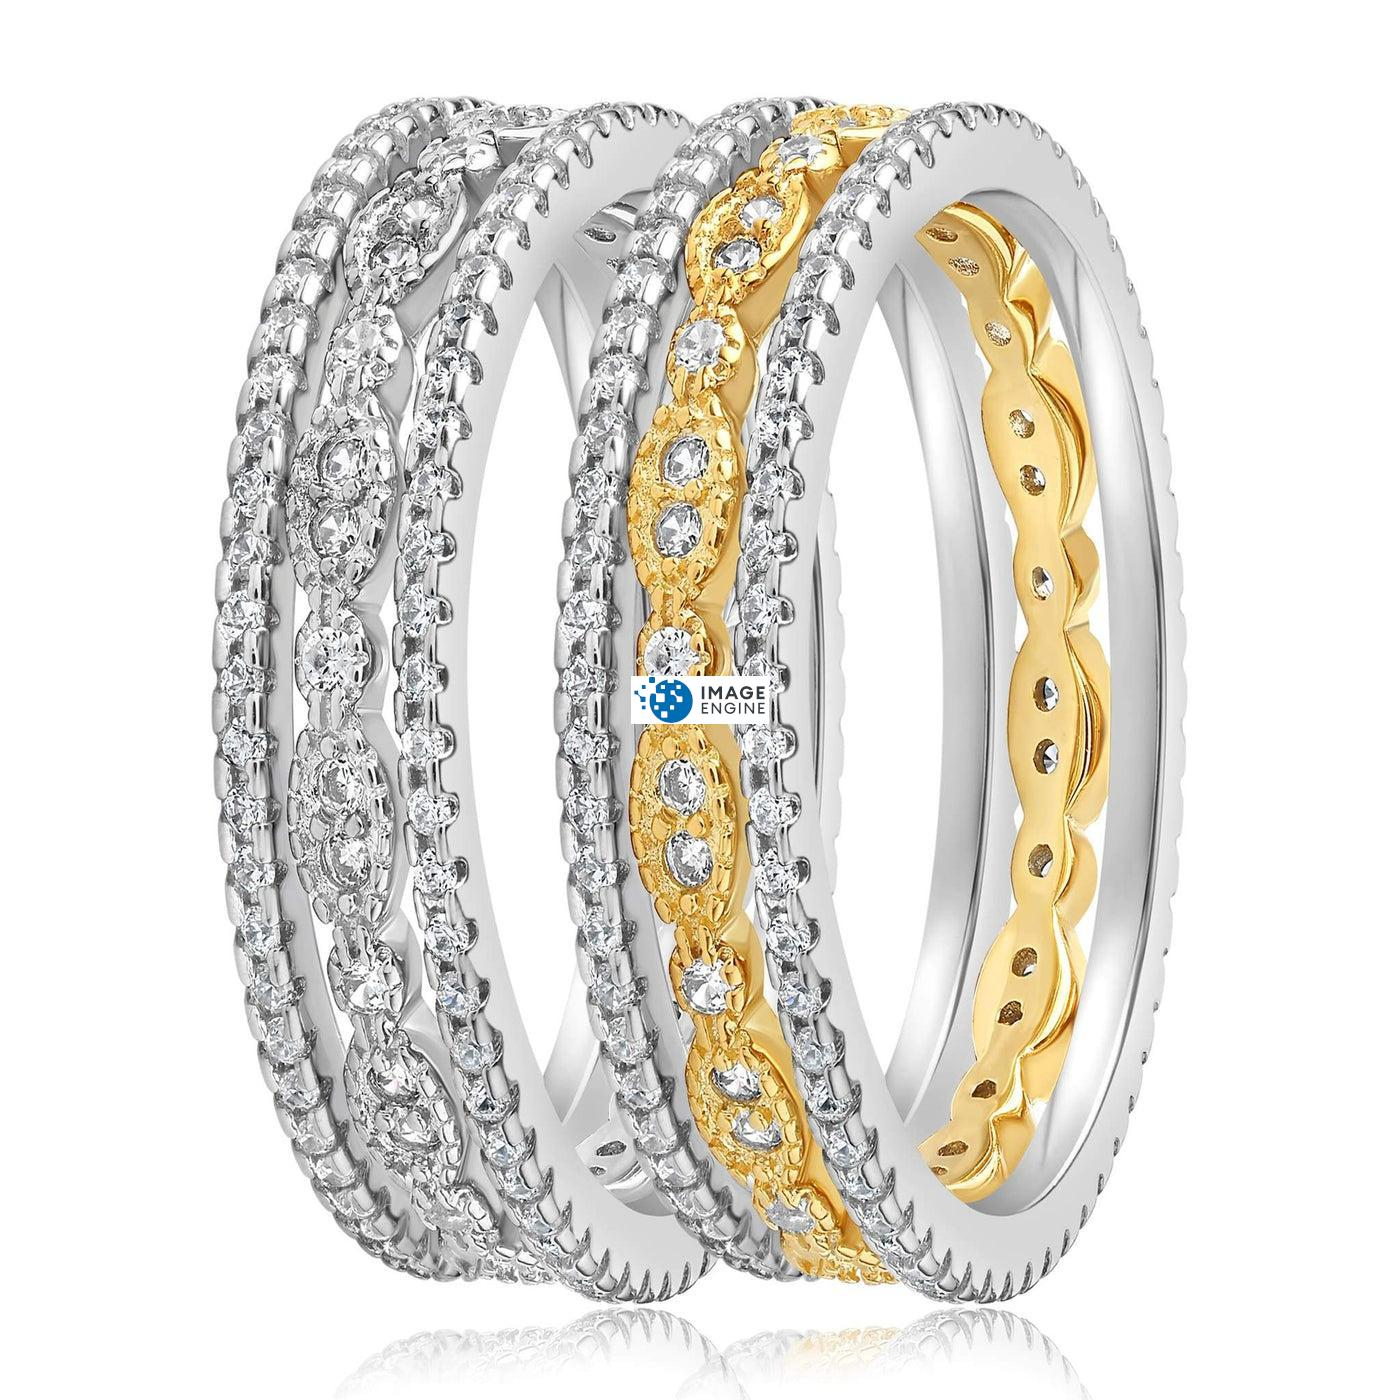 Juliana 3 Ring Set - Side by Side - 18K Yellow Gold and 925 Sterling Silver